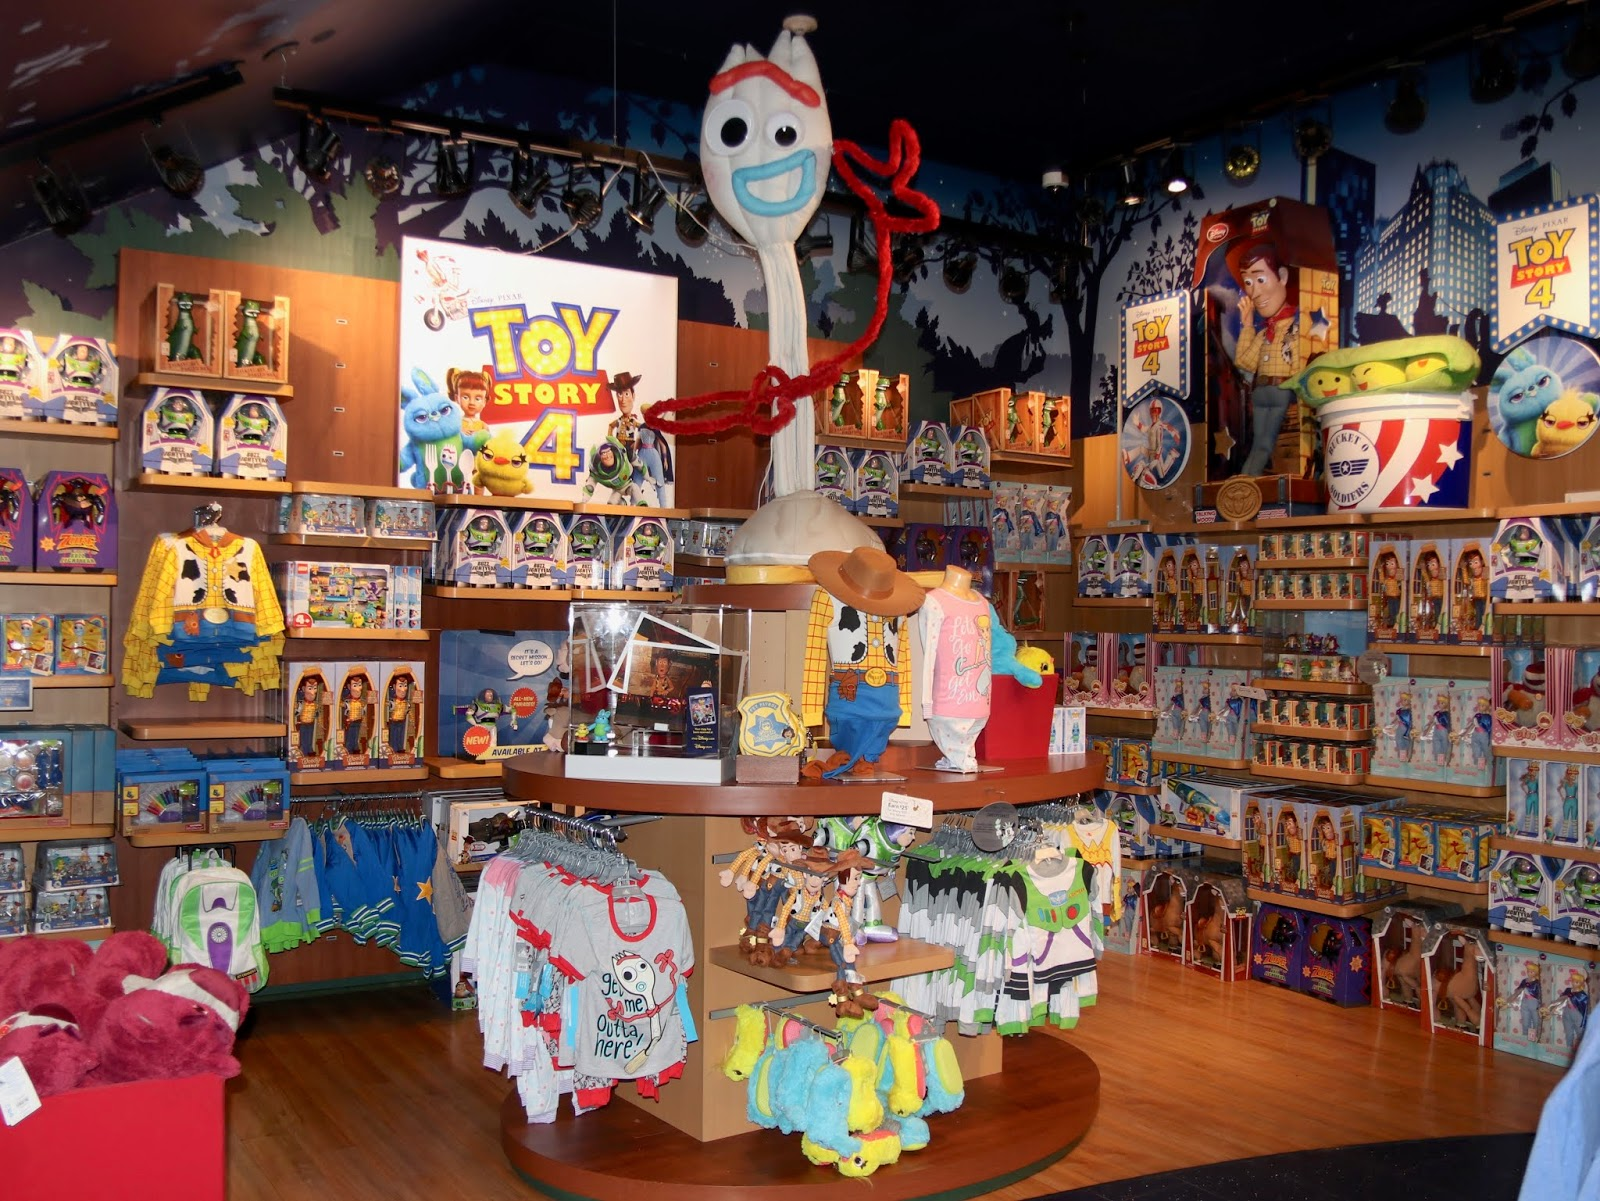 disney store times square toy story 4